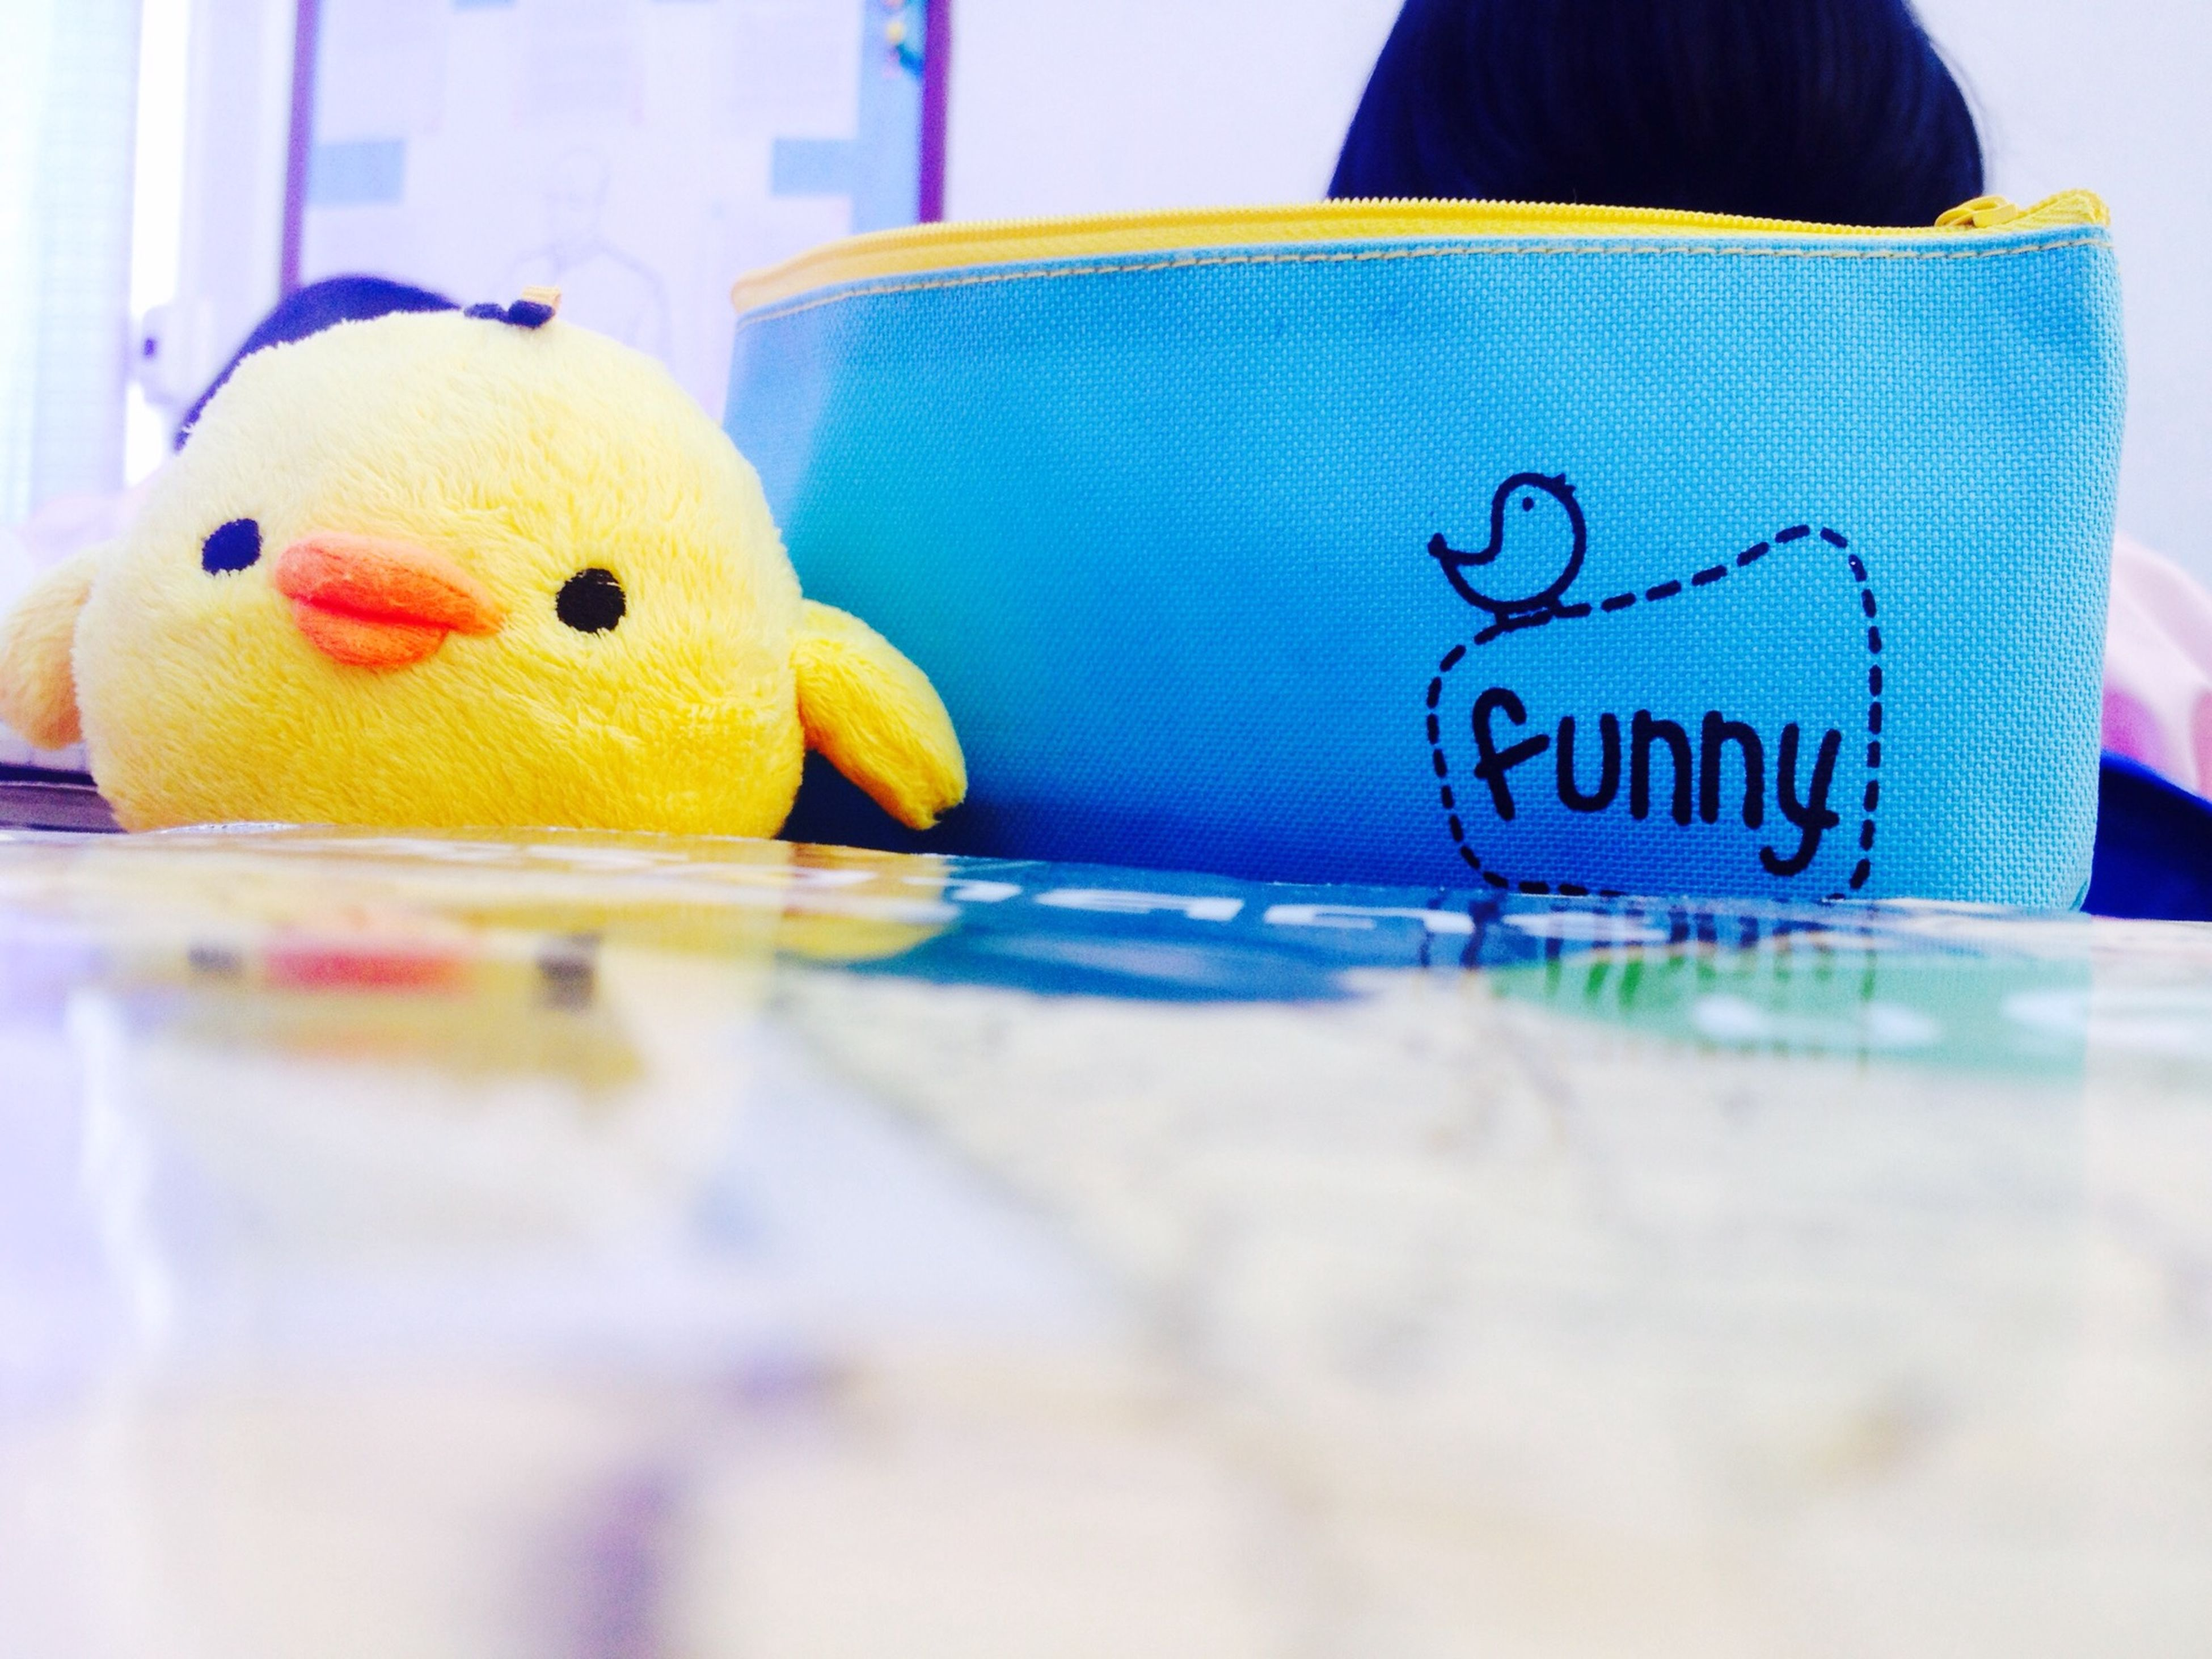 indoors, toy, multi colored, childhood, close-up, blue, animal representation, focus on foreground, selective focus, yellow, colorful, creativity, art, variation, western script, text, art and craft, stuffed toy, no people, still life